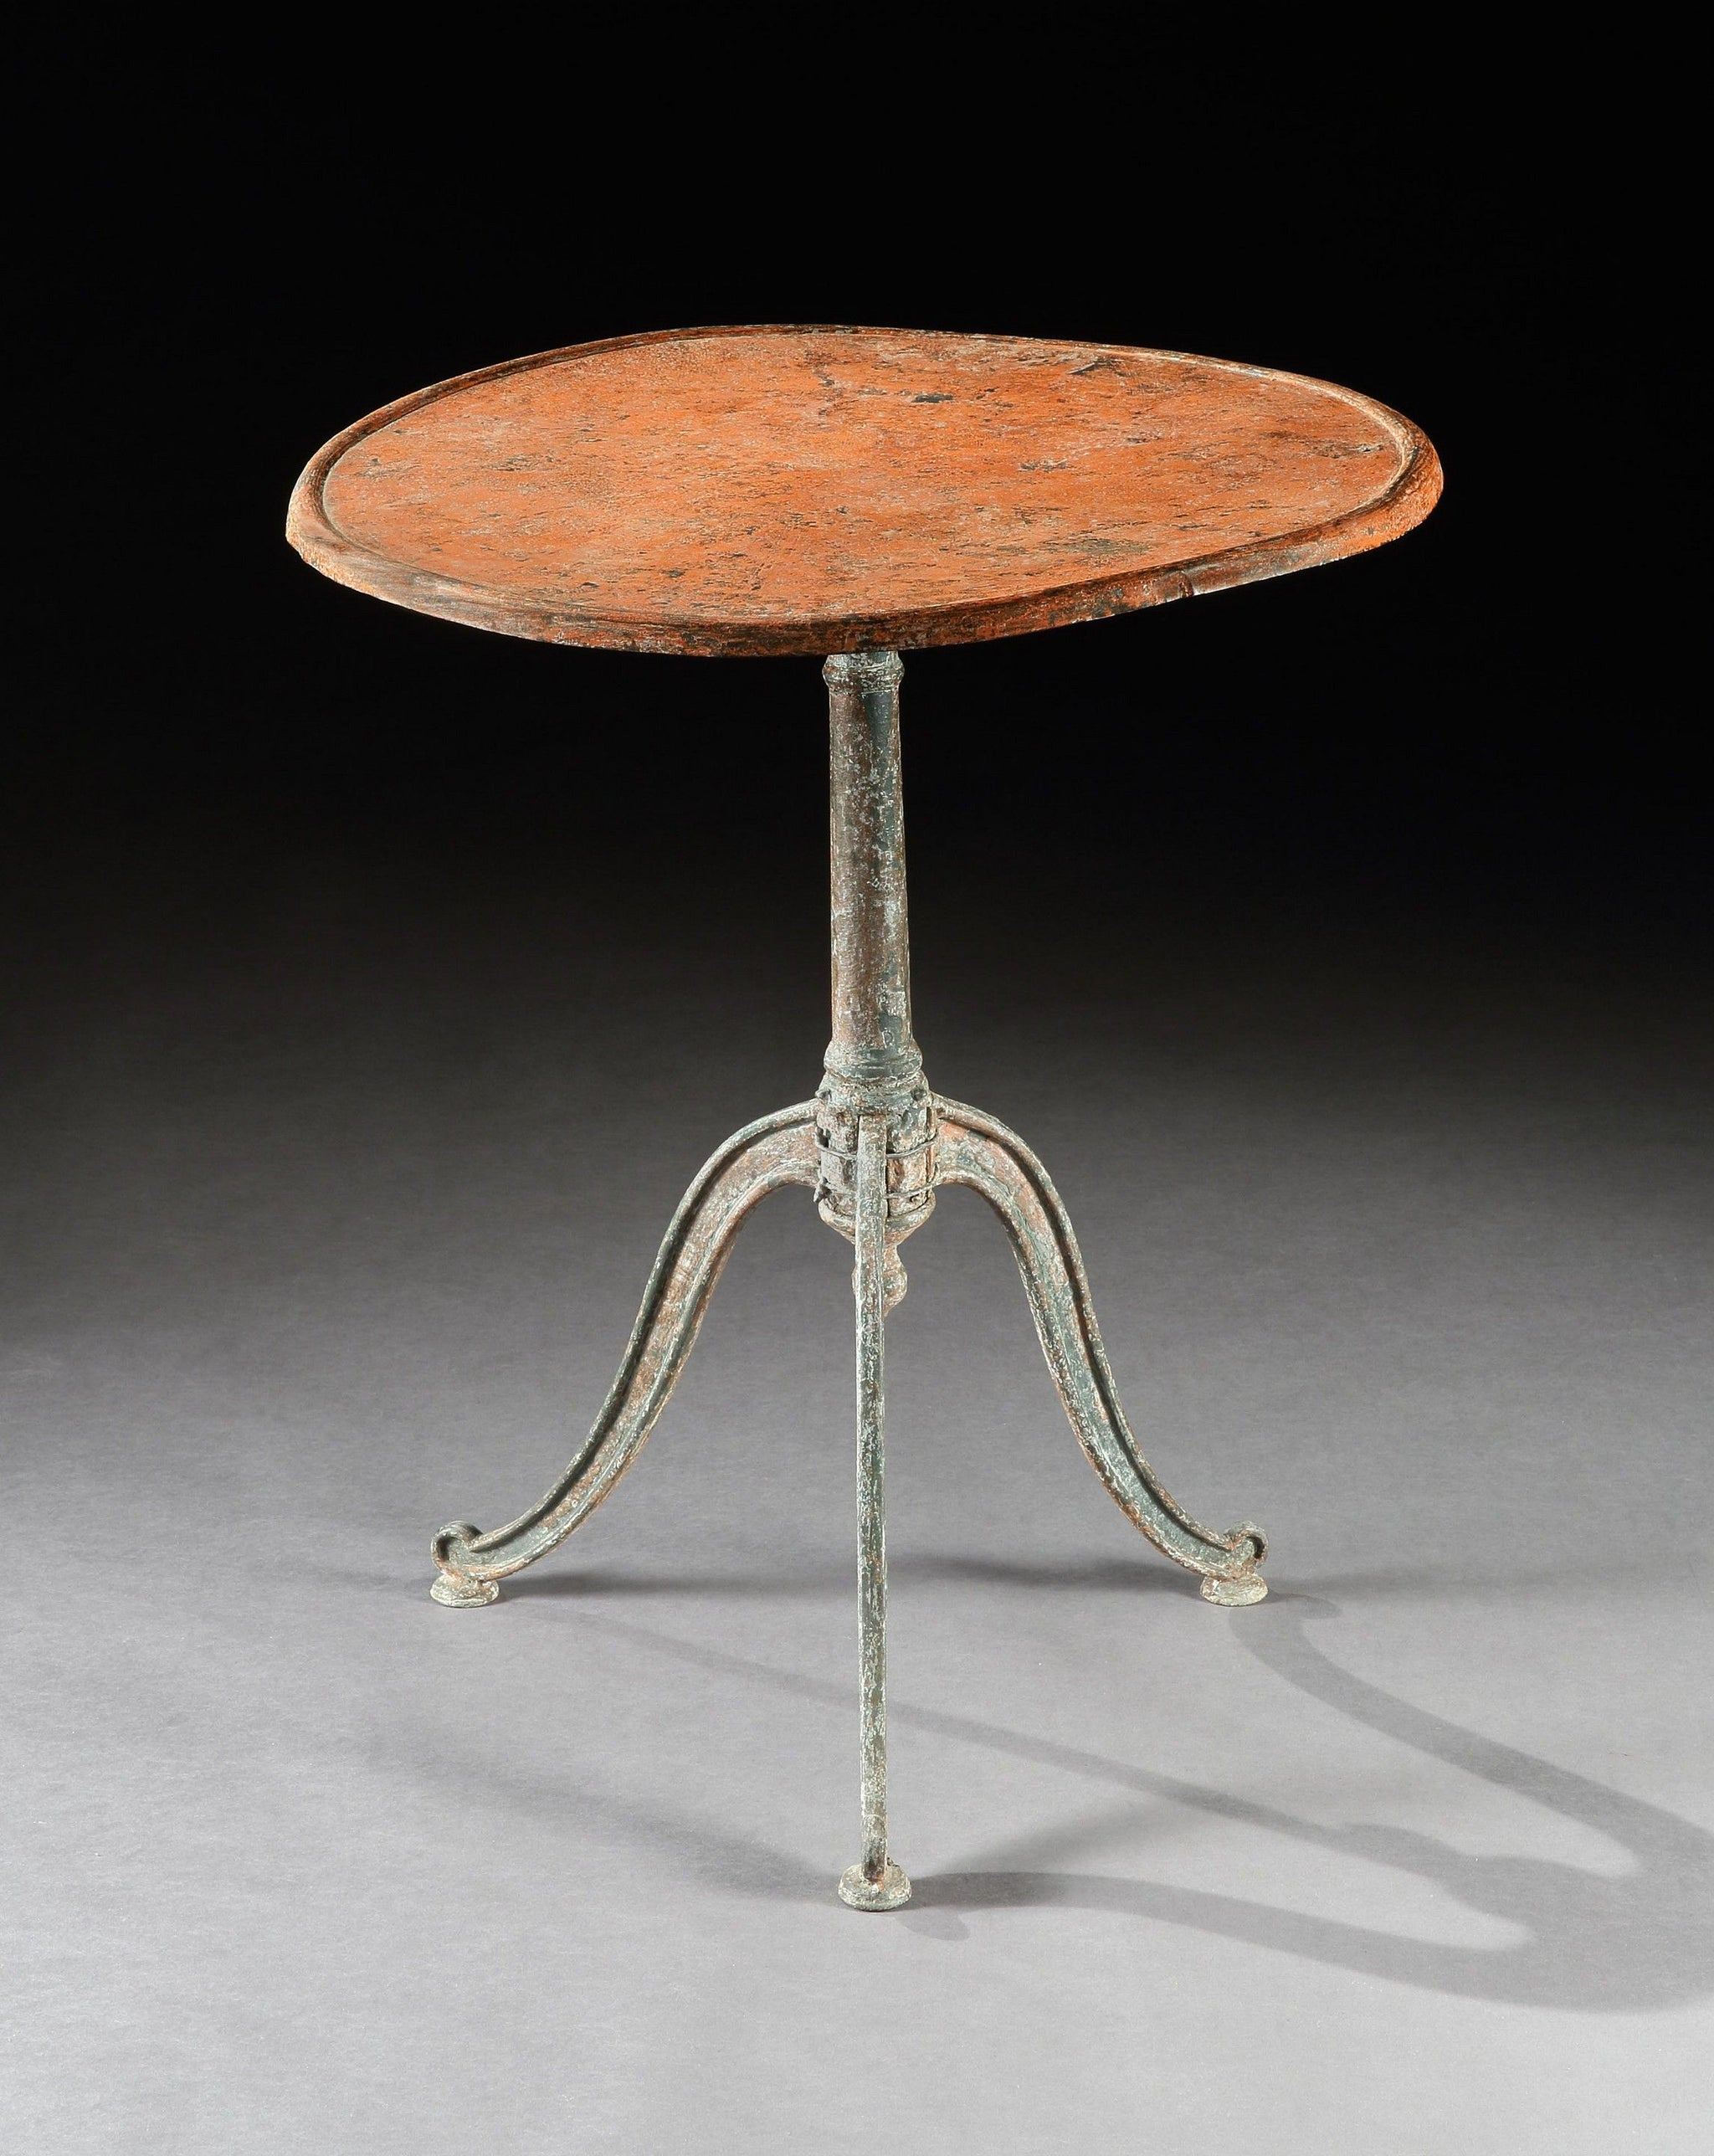 Rare Early Primitive Metal Tripod Table